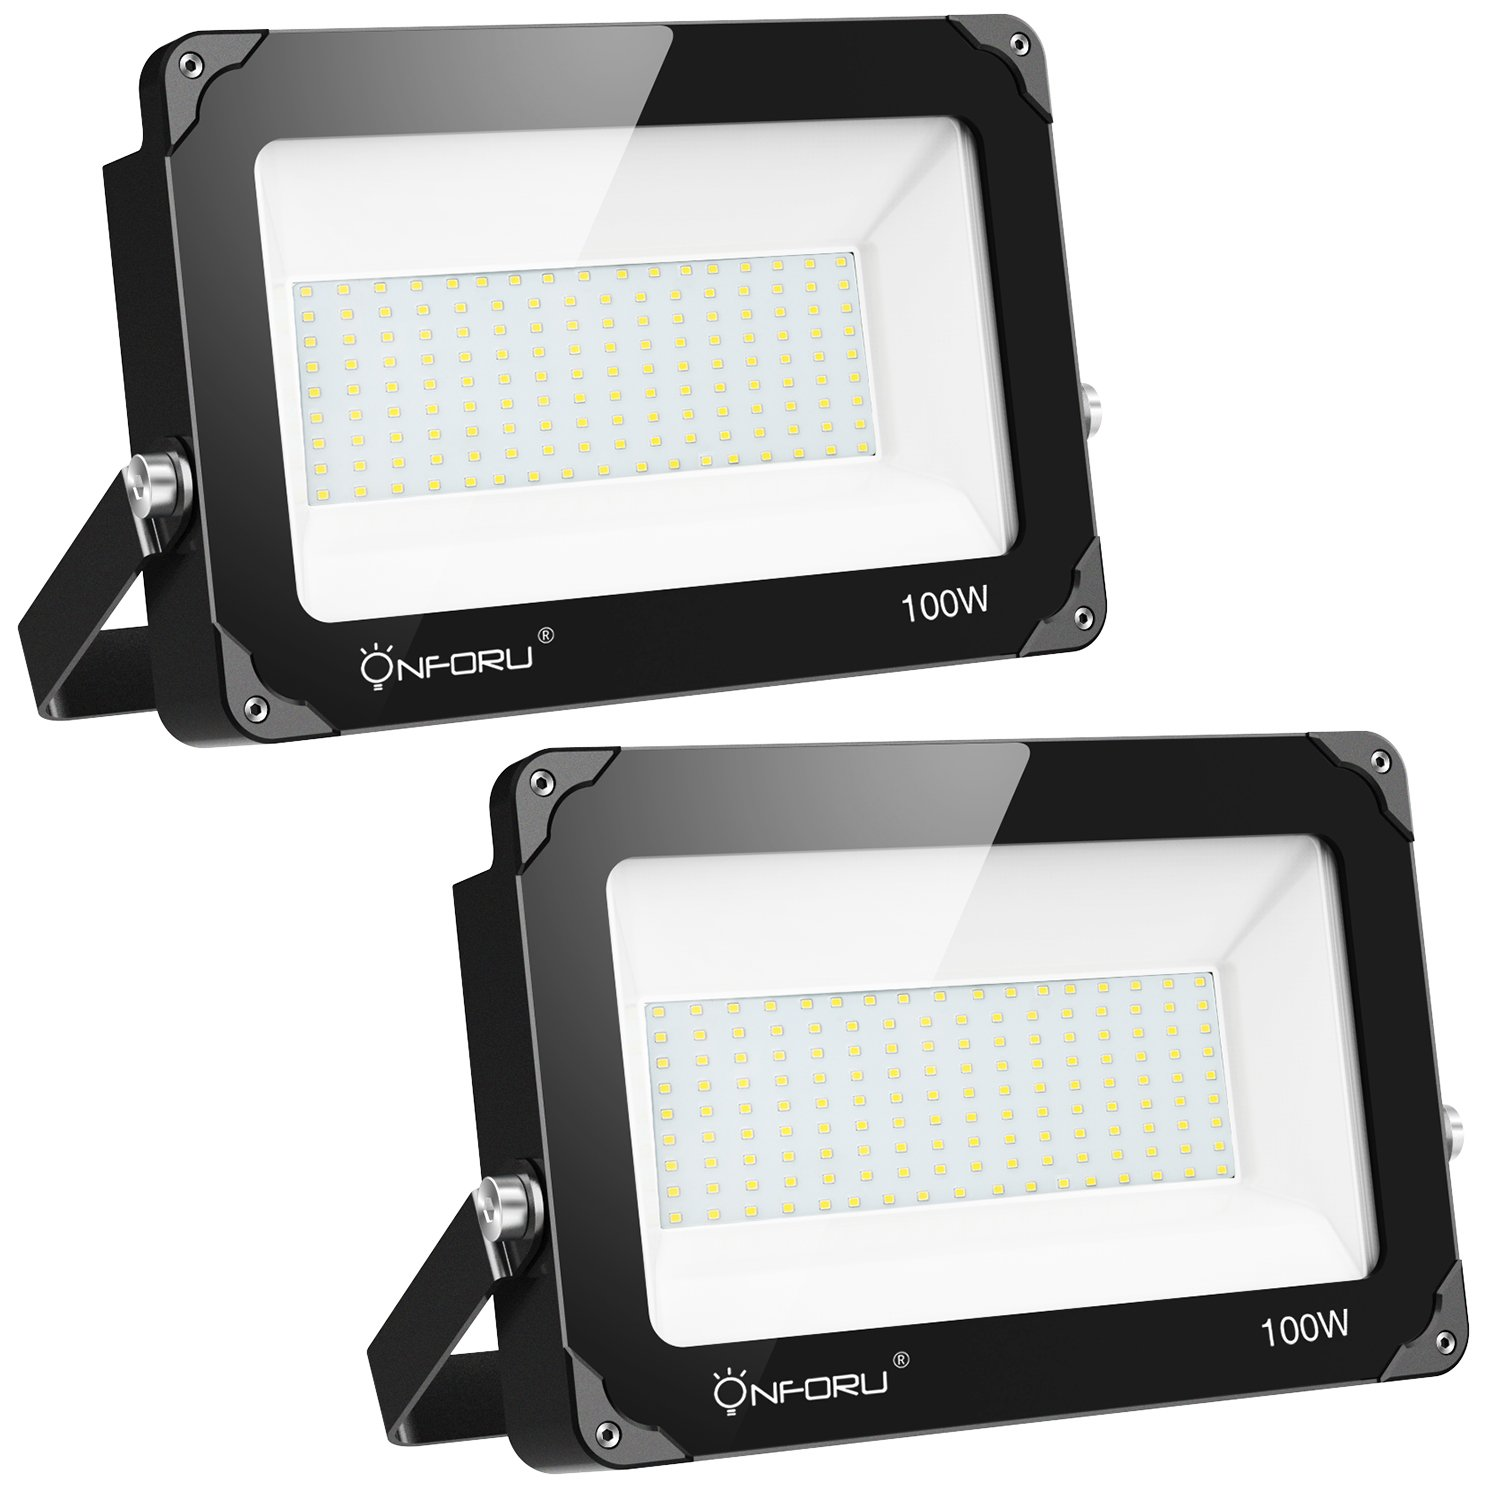 Onforu 2 Pack 100W LED Flood Light, 10000lm 5000K Daylight White, IP66 Waterproof Super Bright Security Lights, Outdoor Floodlight for Yard, Garden, Playground, Basketball Court